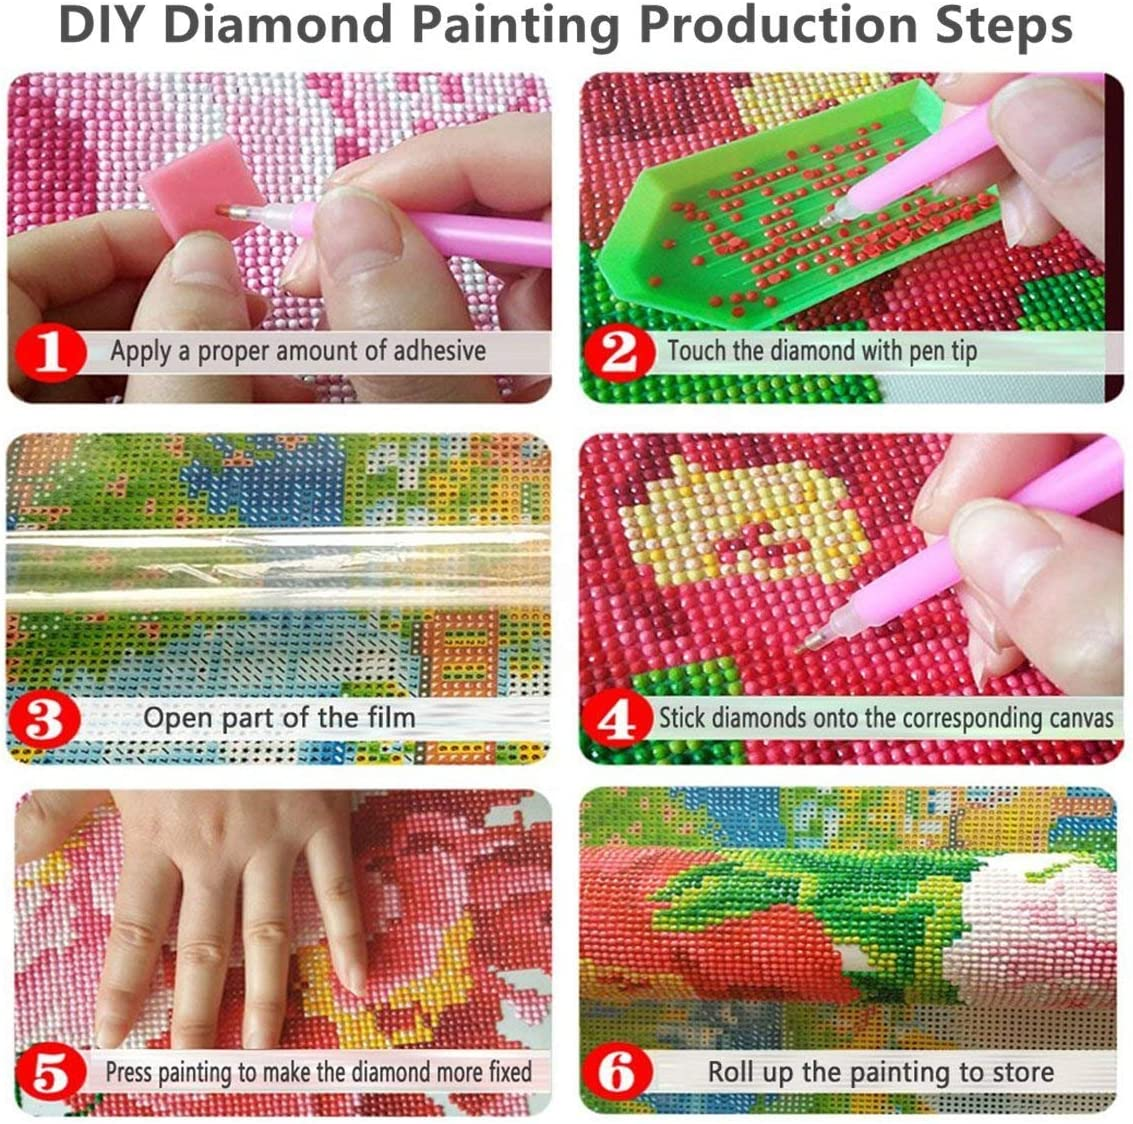 DIY 5d Diamond Painting Crystal Kits,African lady Wall Art,Painting Diamonds Full Drill,Rhinestone Embroidery Cross Stitch Kits Supply Arts Craft Canvas Wall Decor Stickers Home Decor 12x12 inches